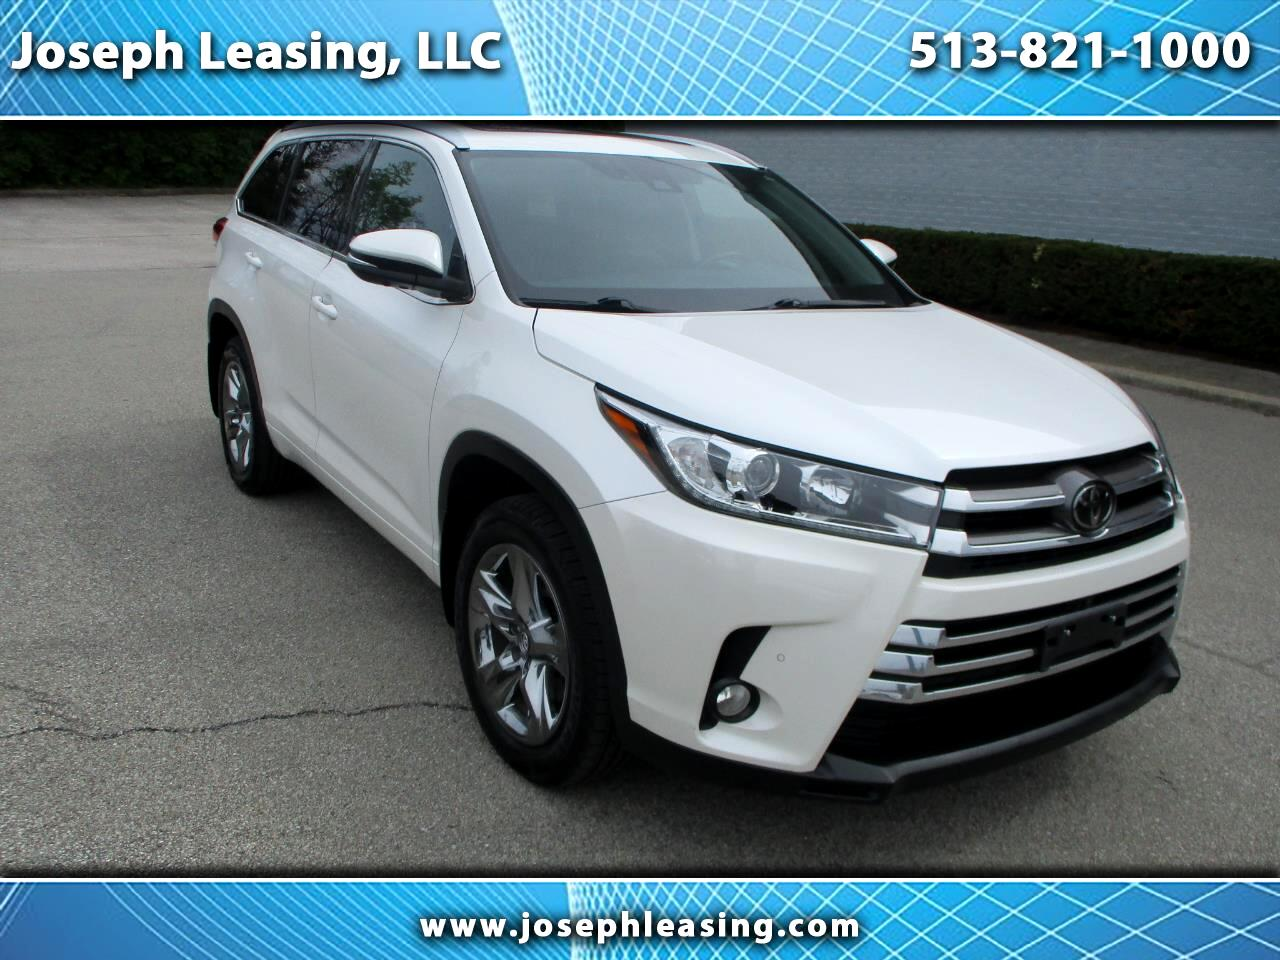 Toyota Highlander Limited Platinum AWD V6 2017